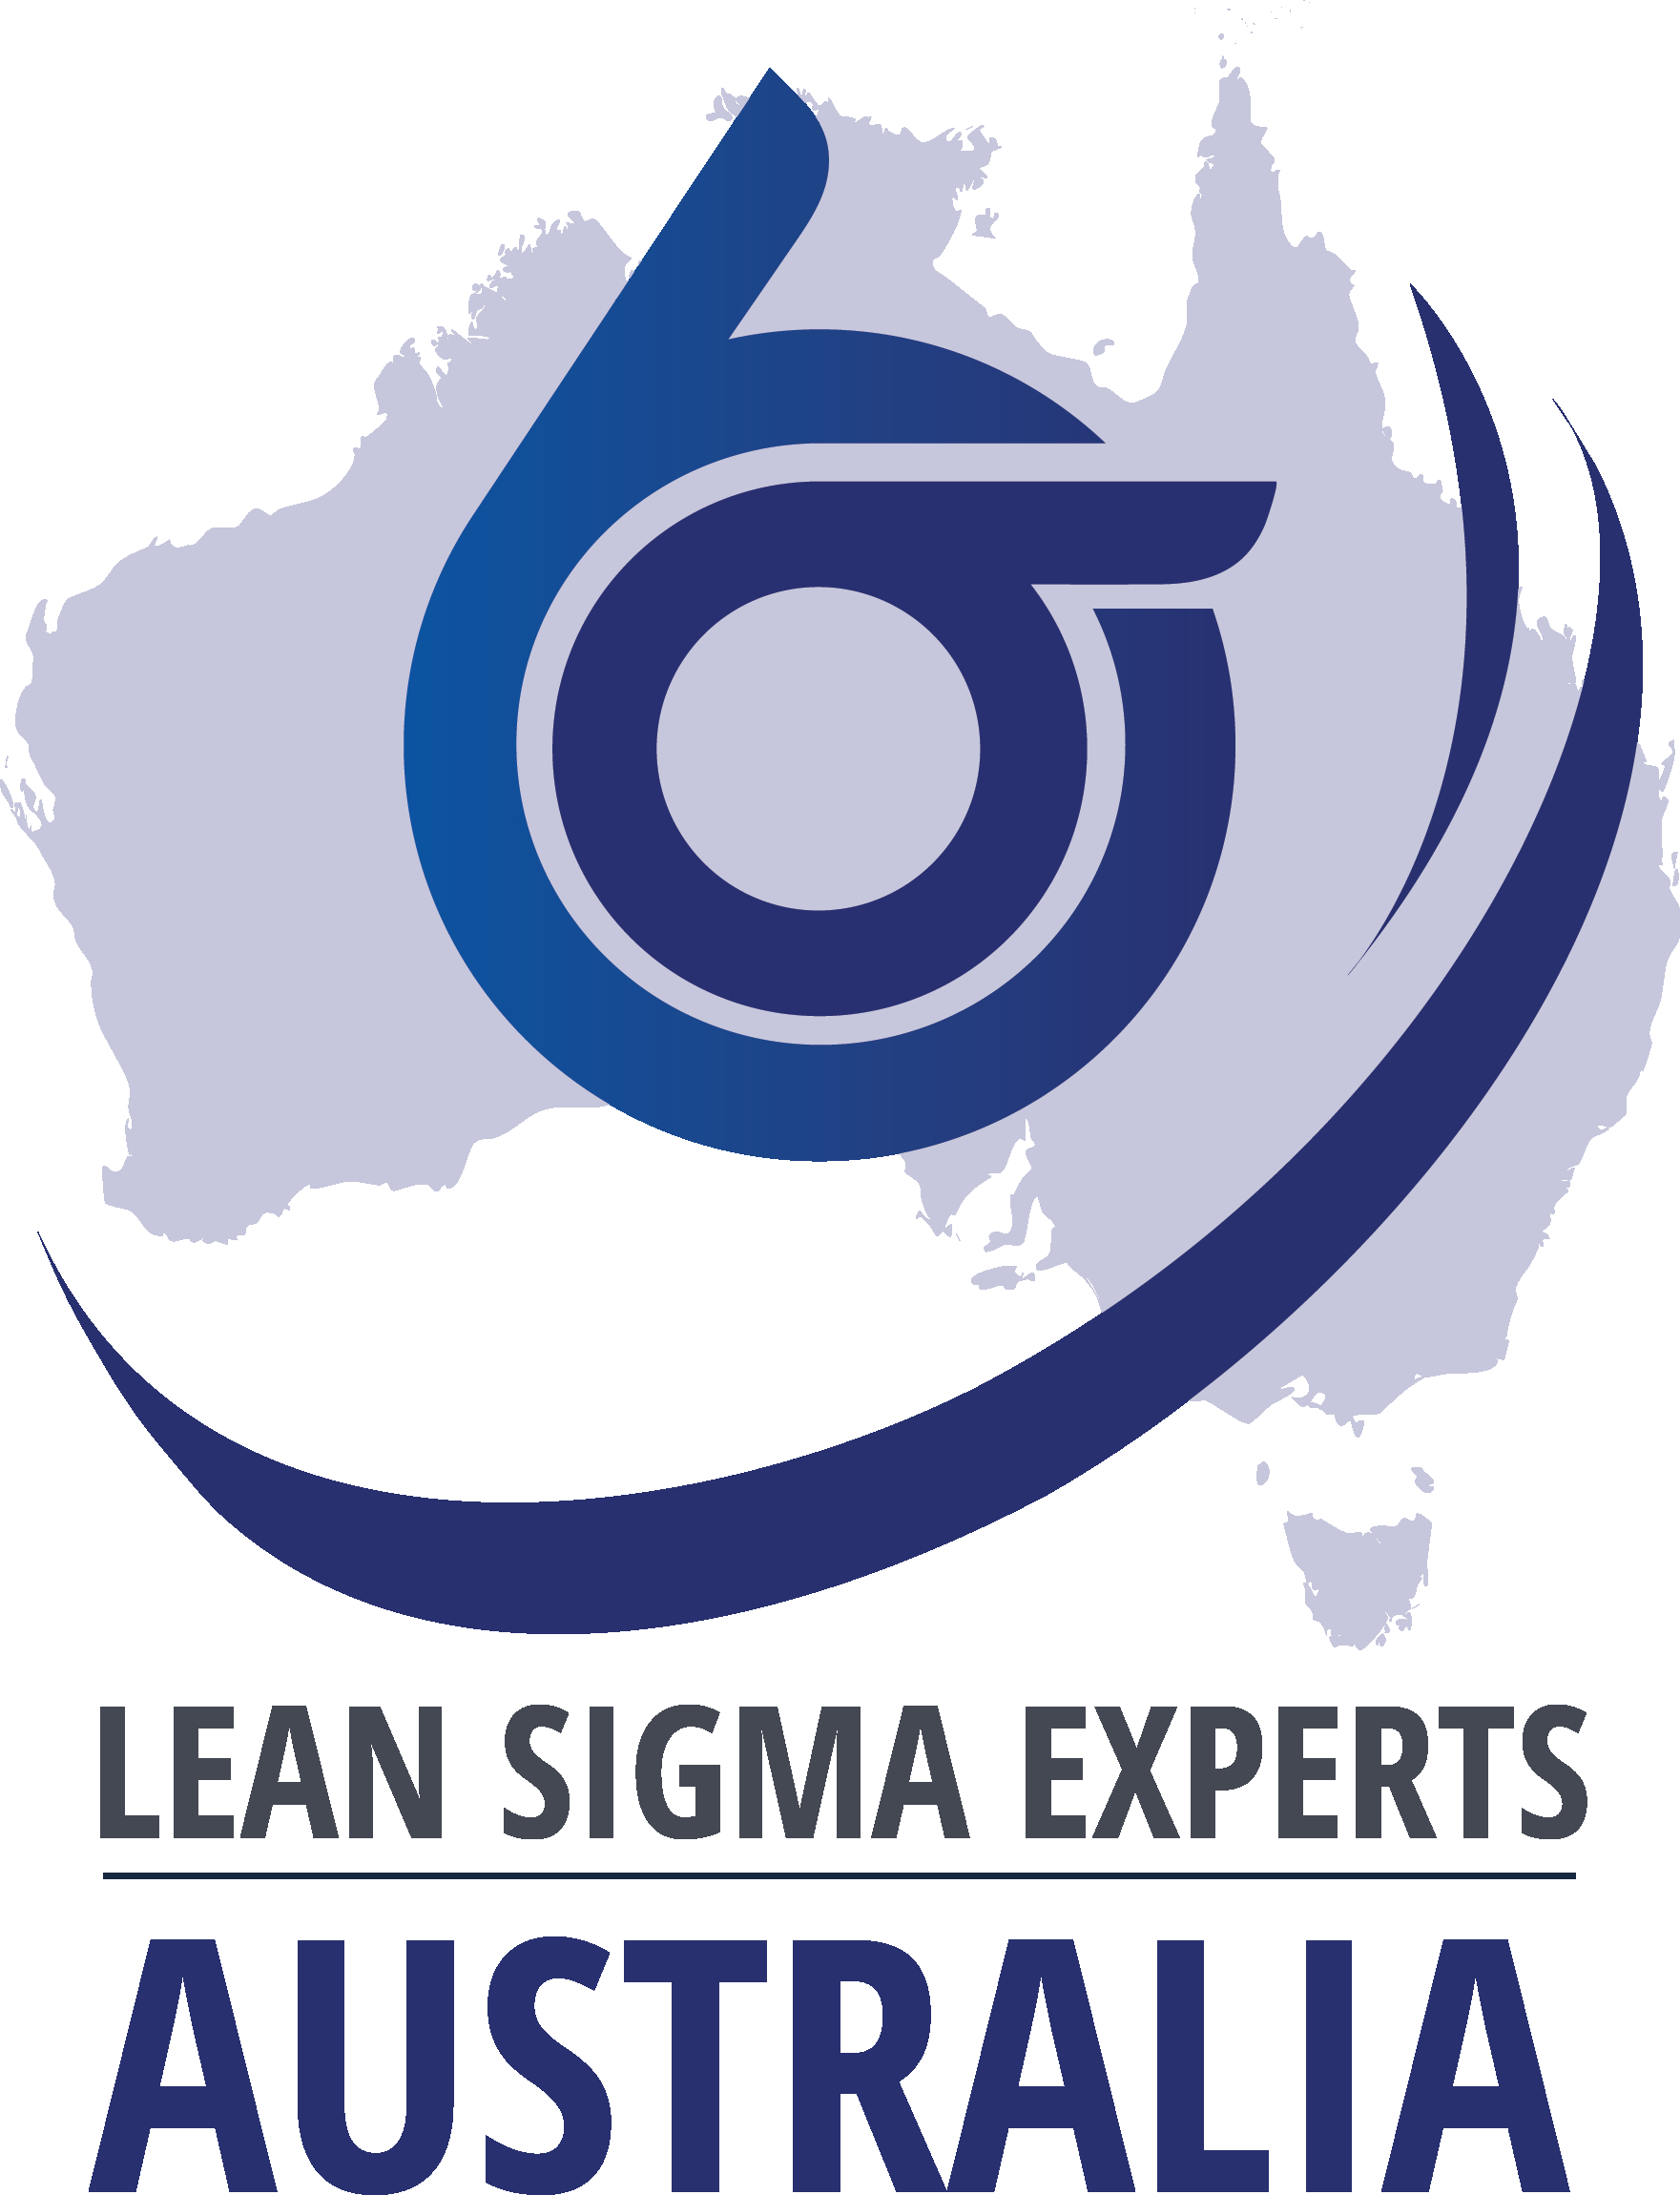 Lean Sigma Experts Australia The Council For Six Sigma Certification